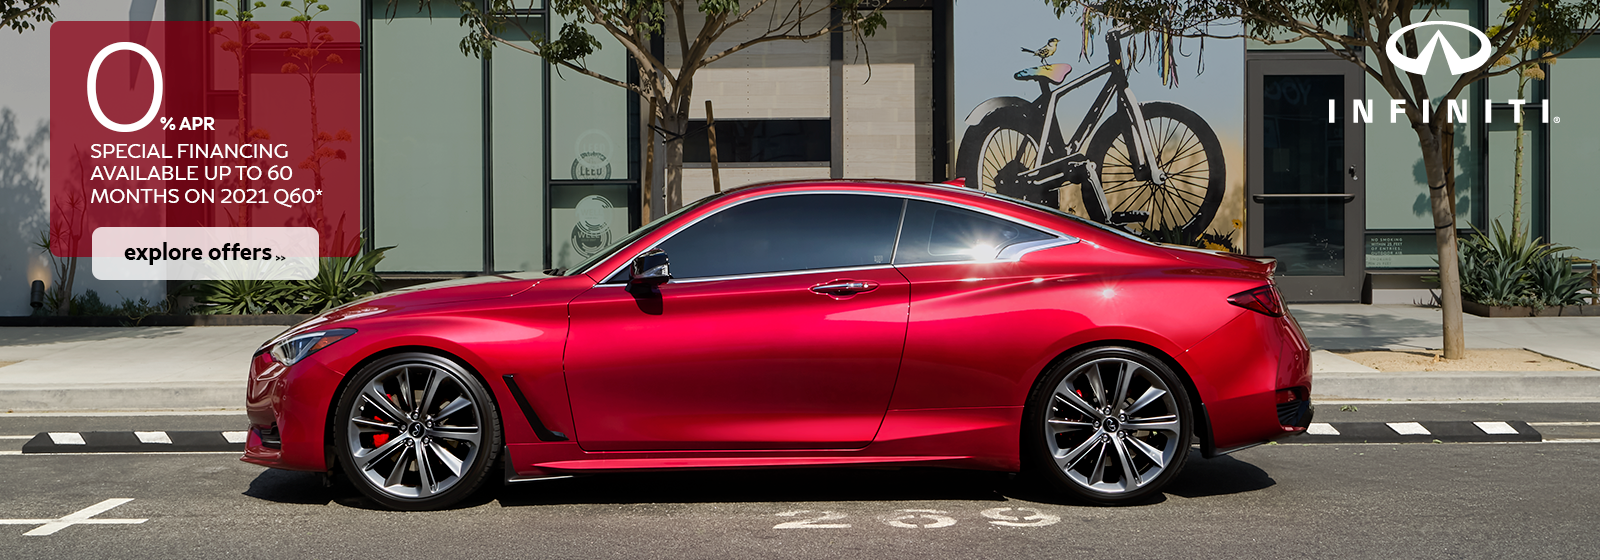 Finance a 2021 Q60 for as low as 0% for 60 months!